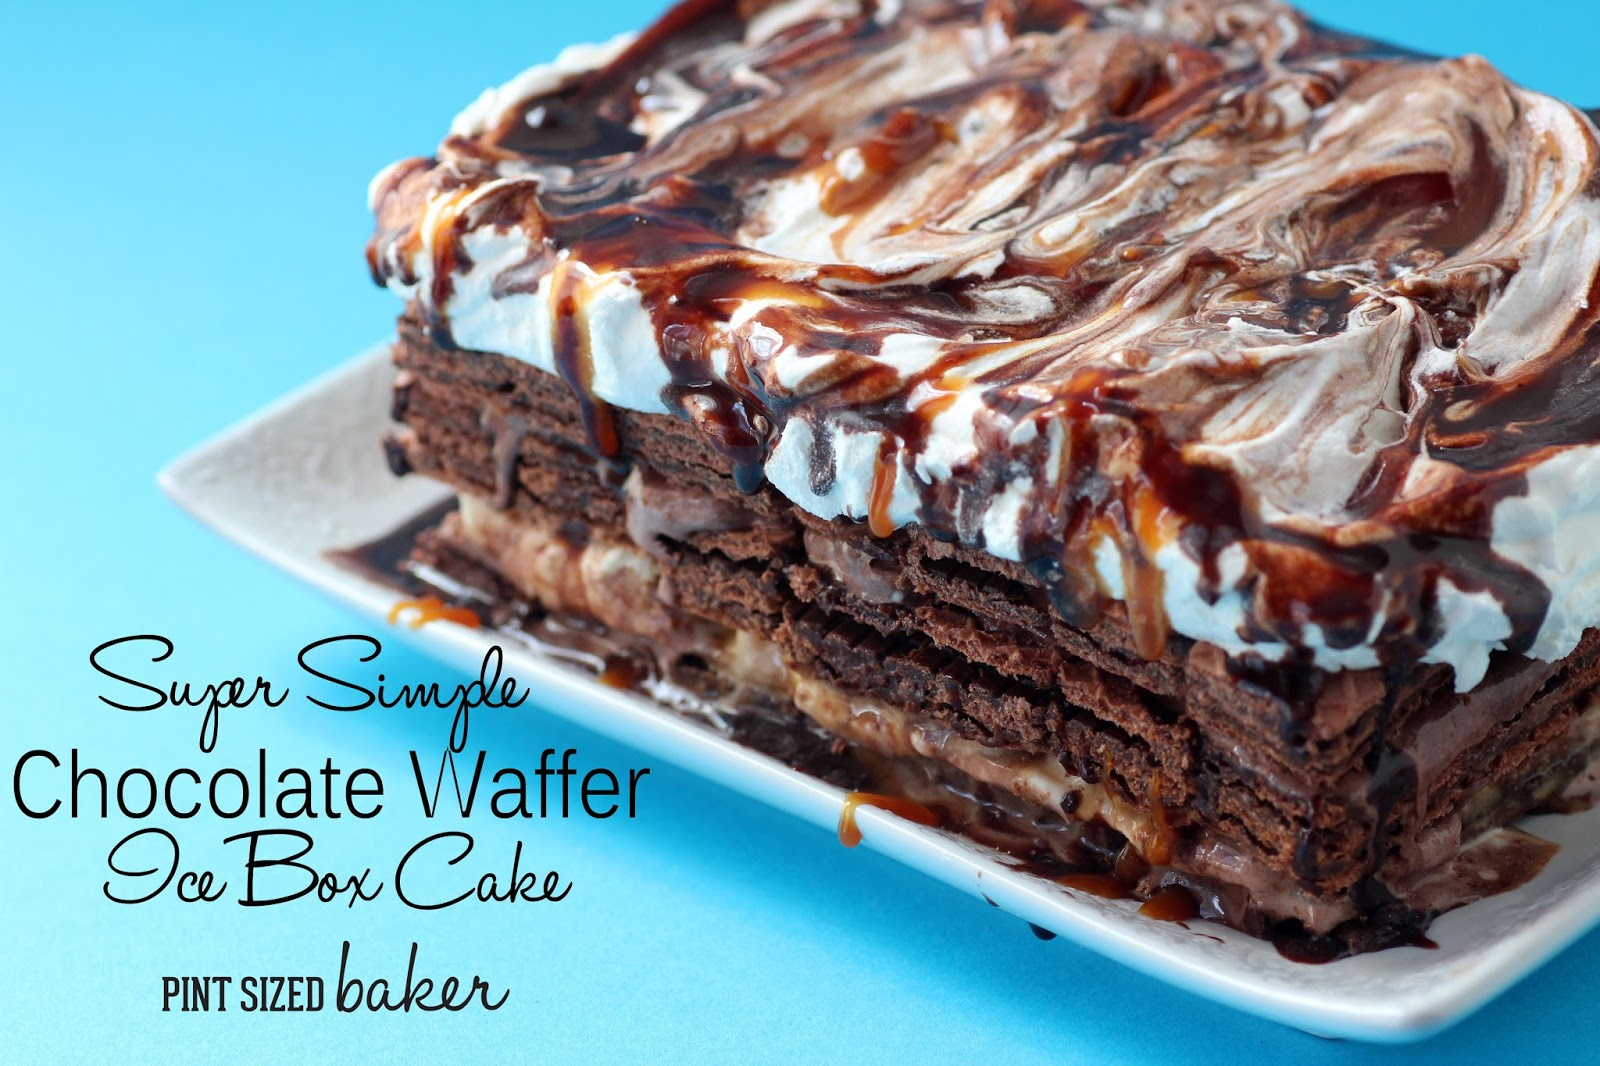 Chocolate Wafer Cookie Icebox Cake - Pint Sized Baker